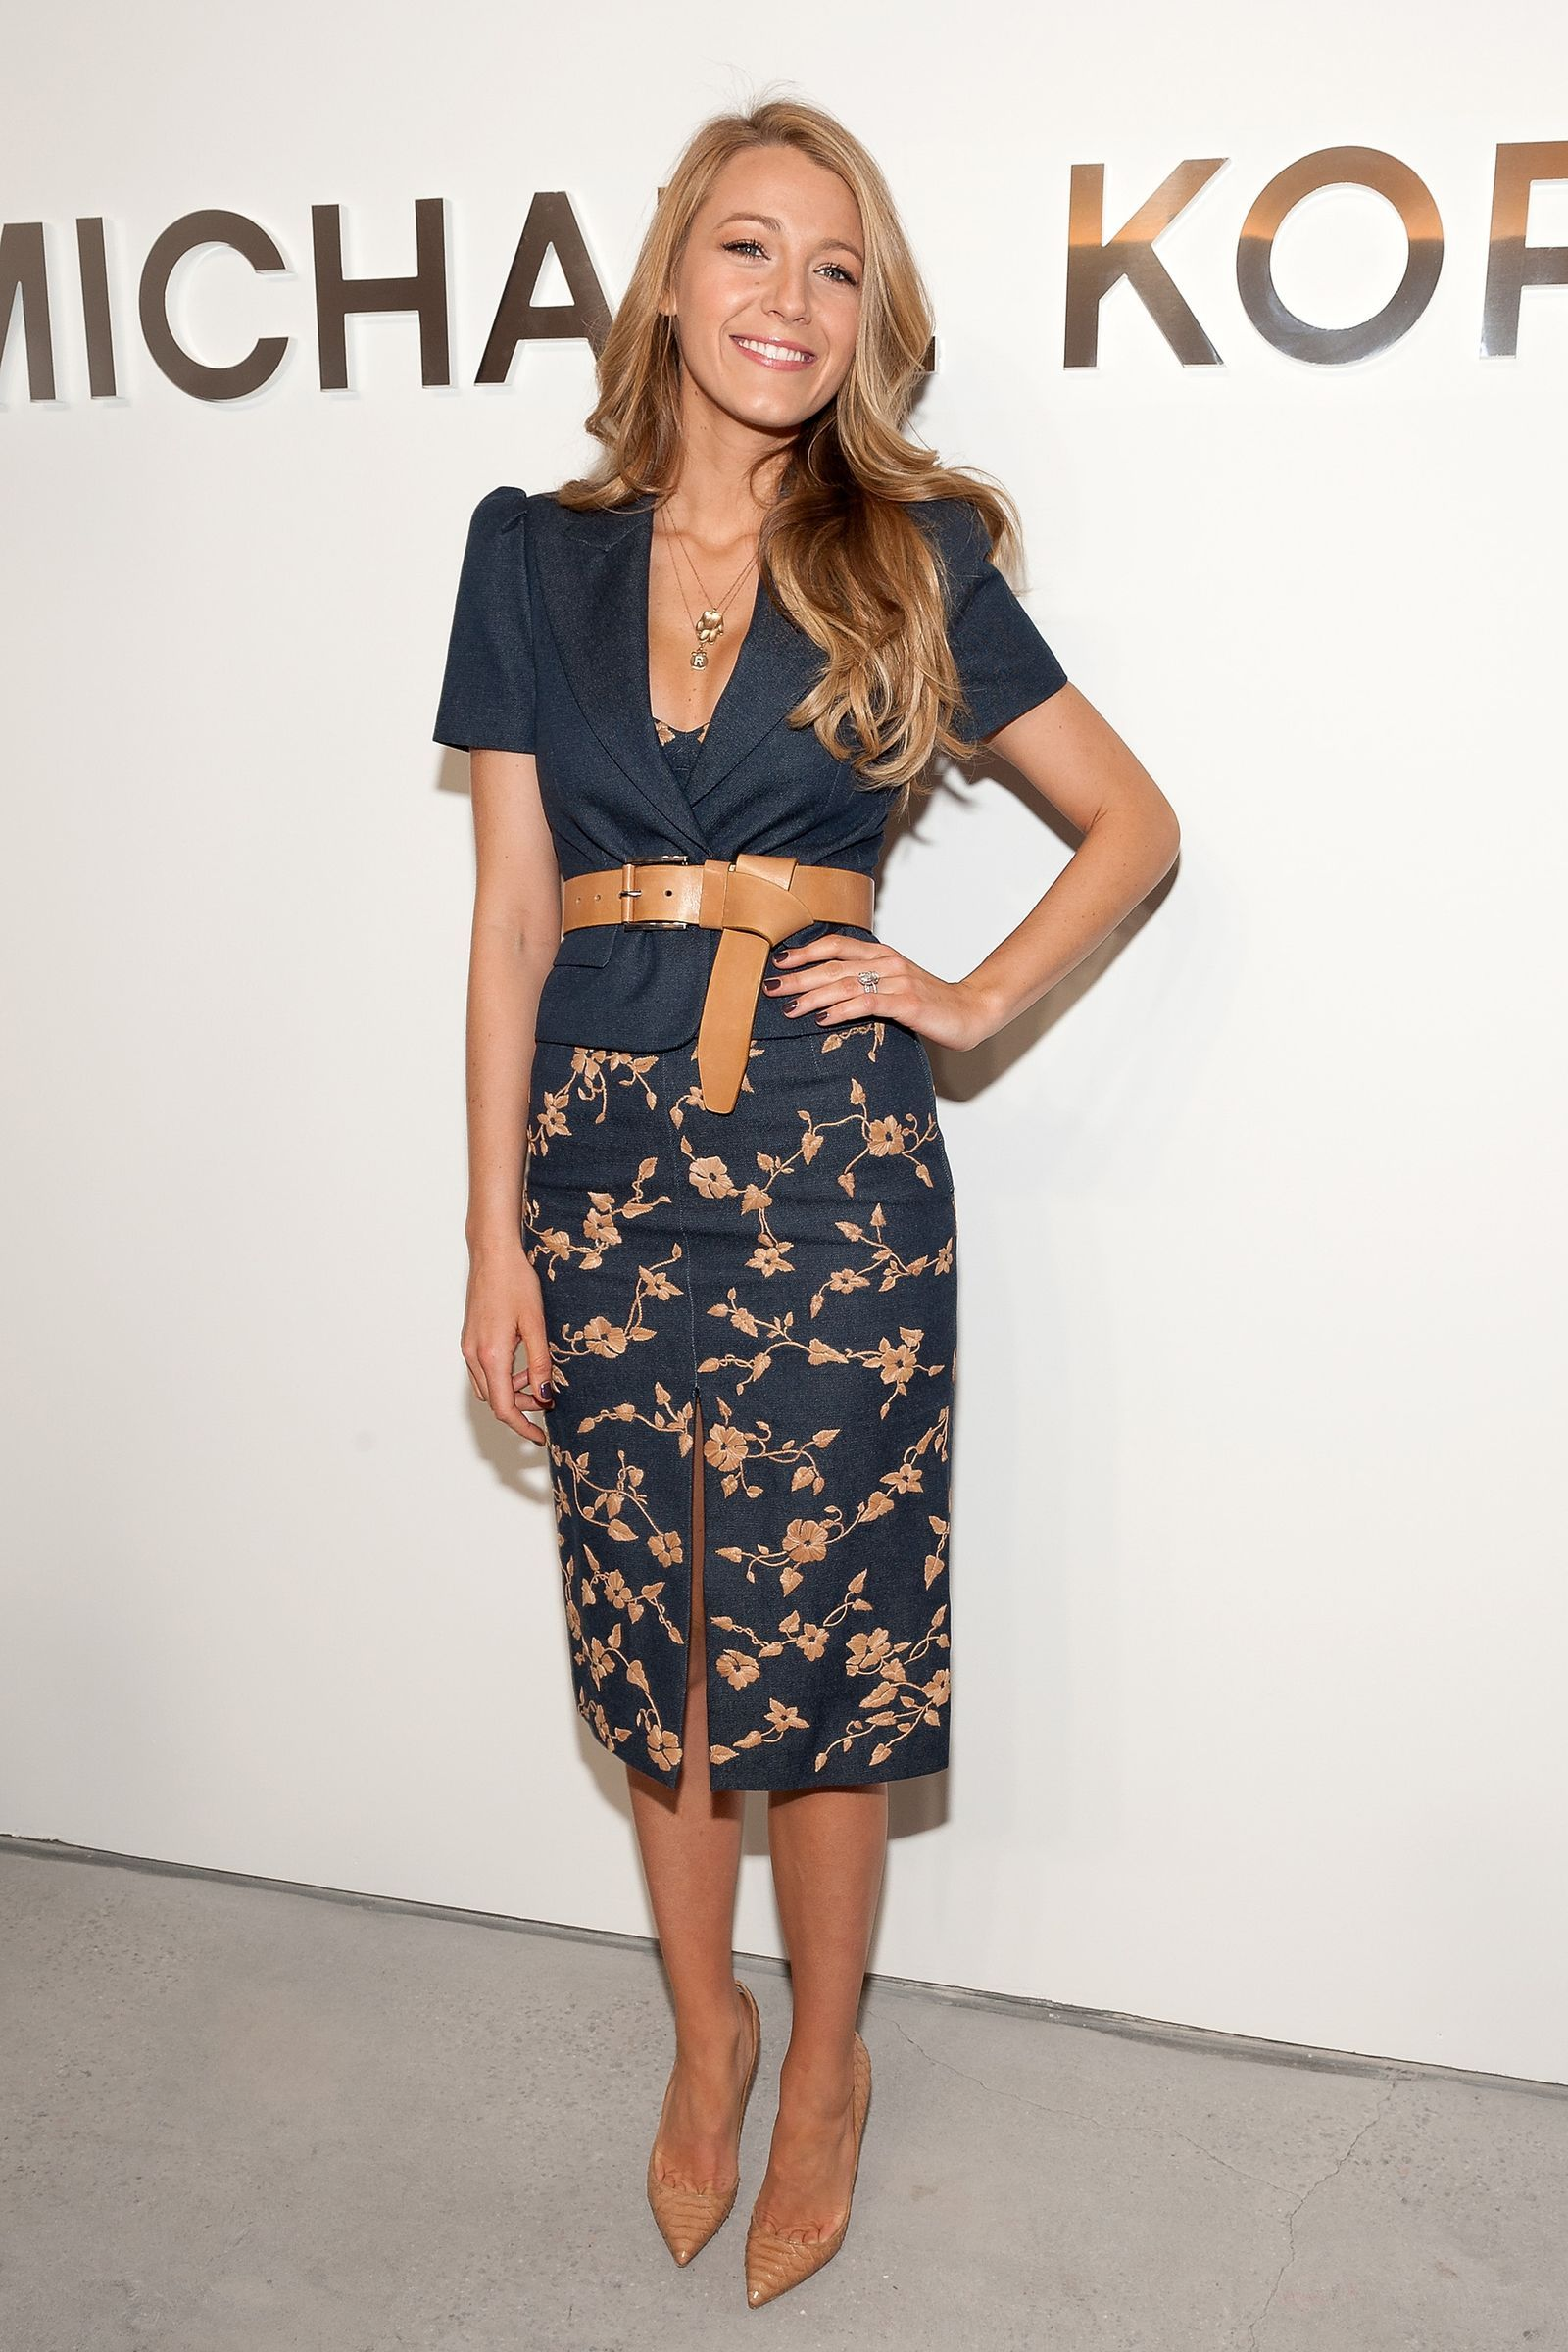 46 of Blake Lively's Gorgeous Looks #blakelively